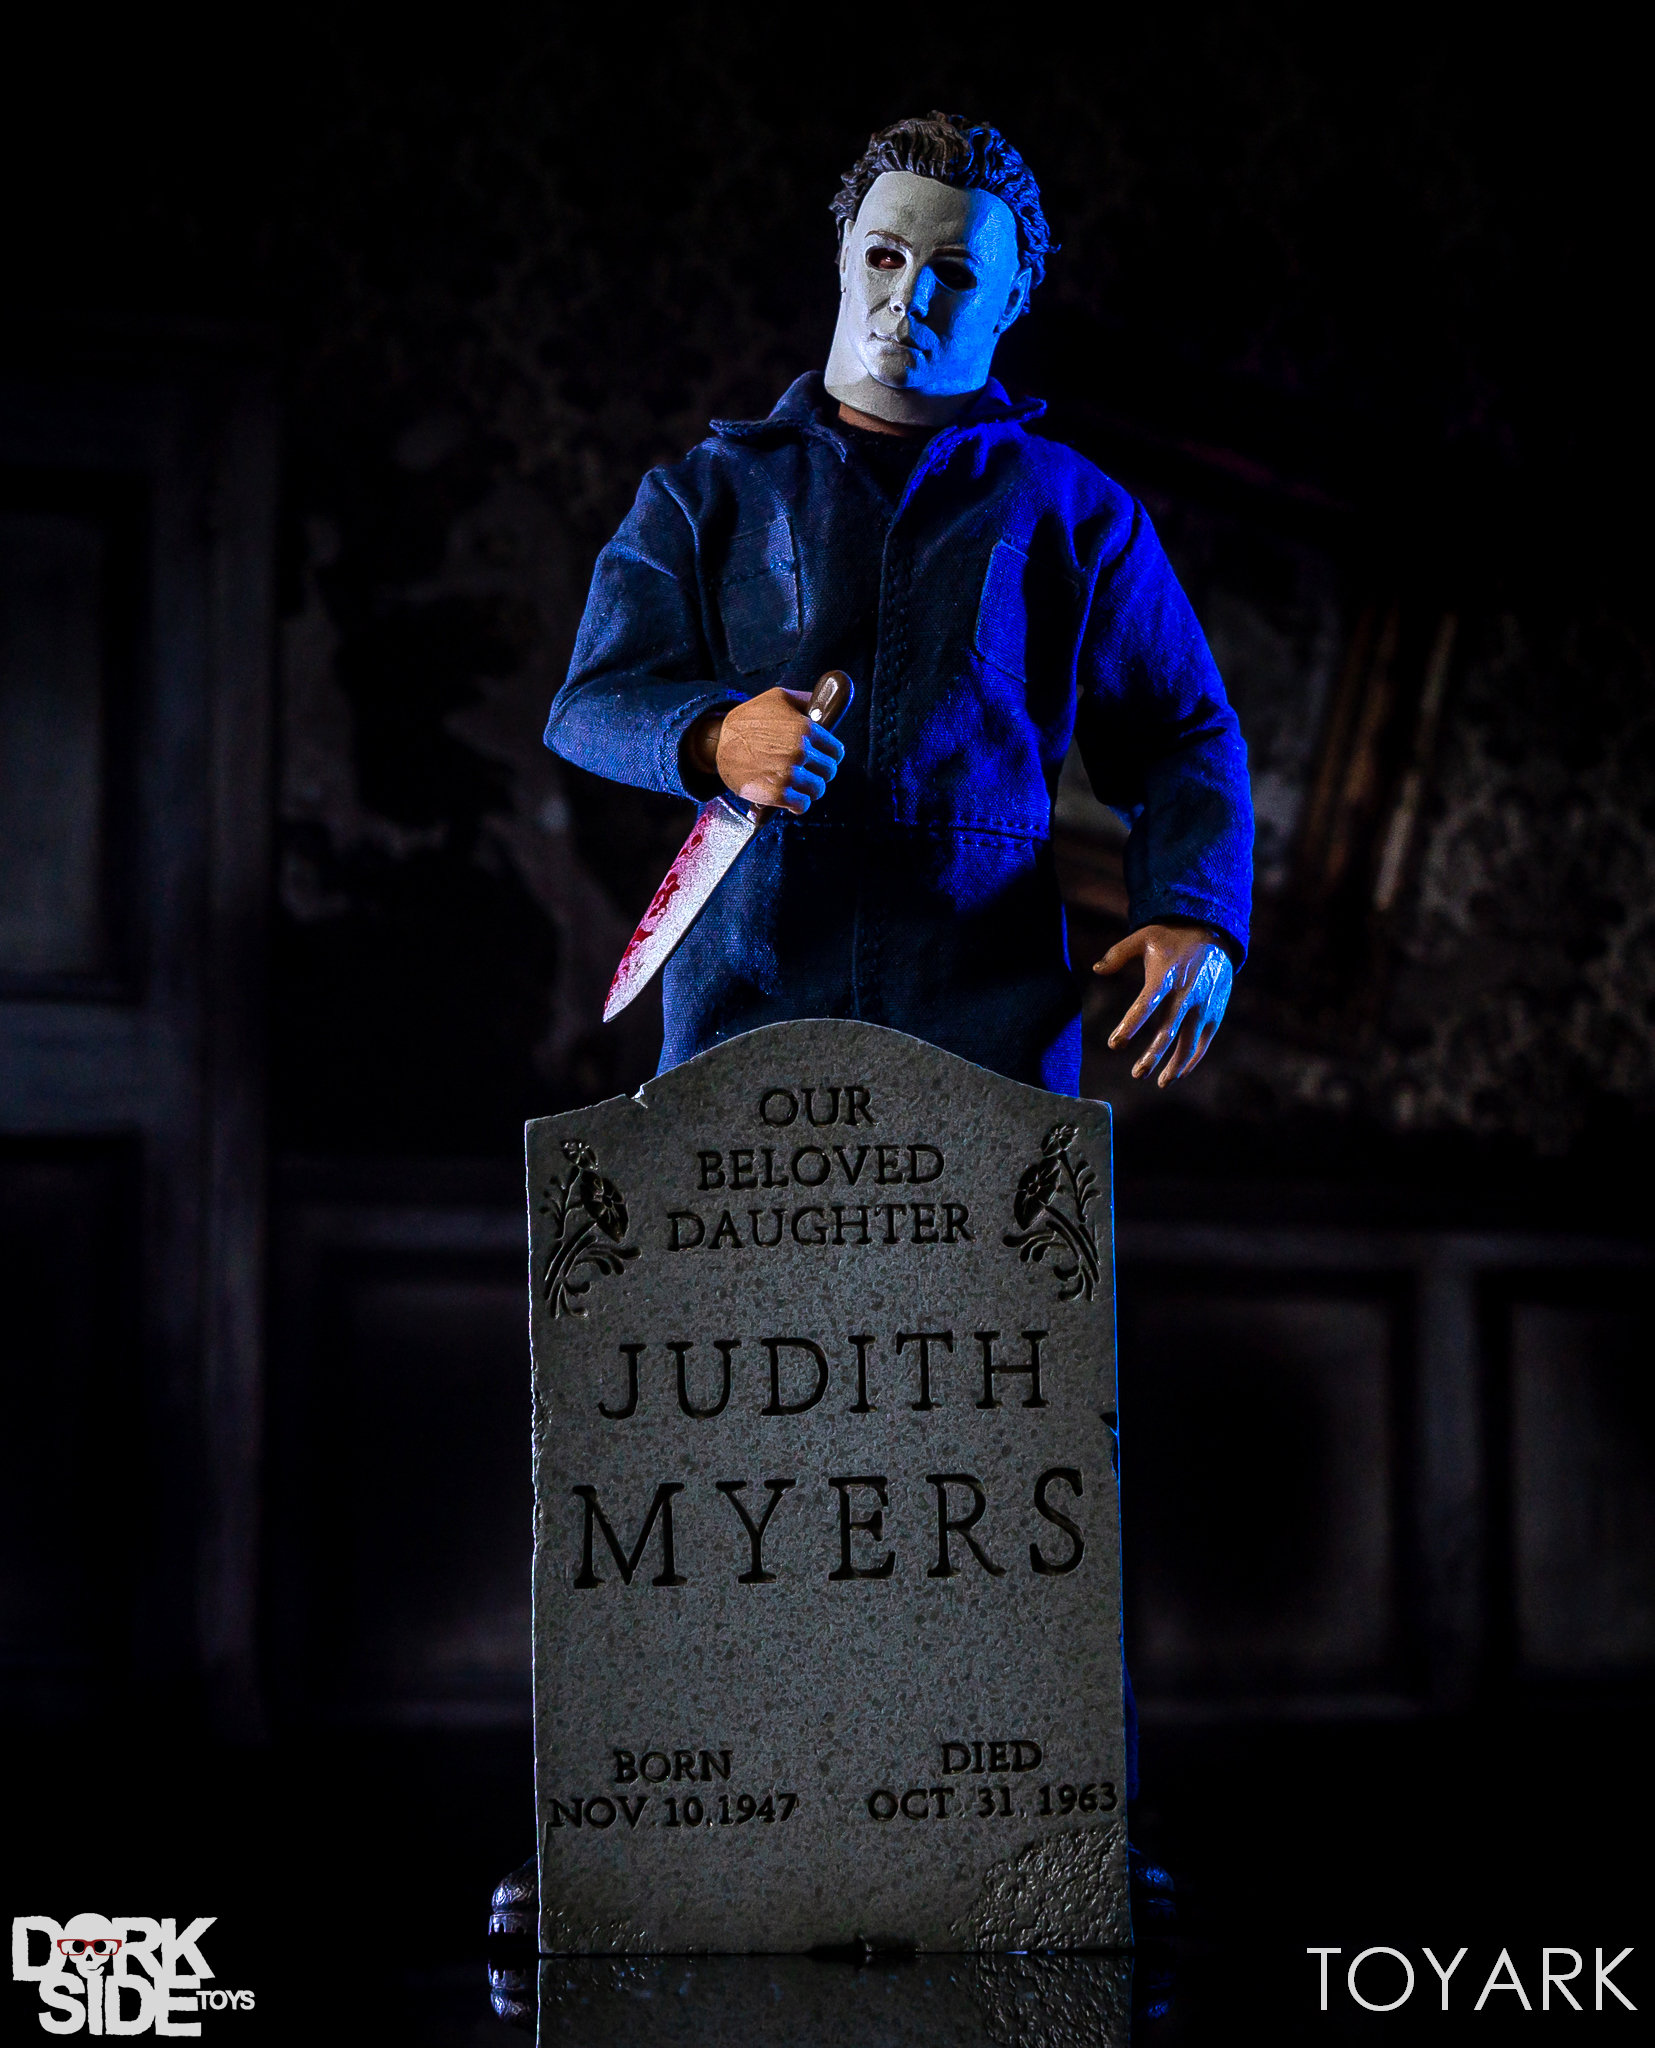 https://news.toyark.com/wp-content/uploads/sites/4/2018/10/Mezco-One12-Michael-Myers-042.jpg